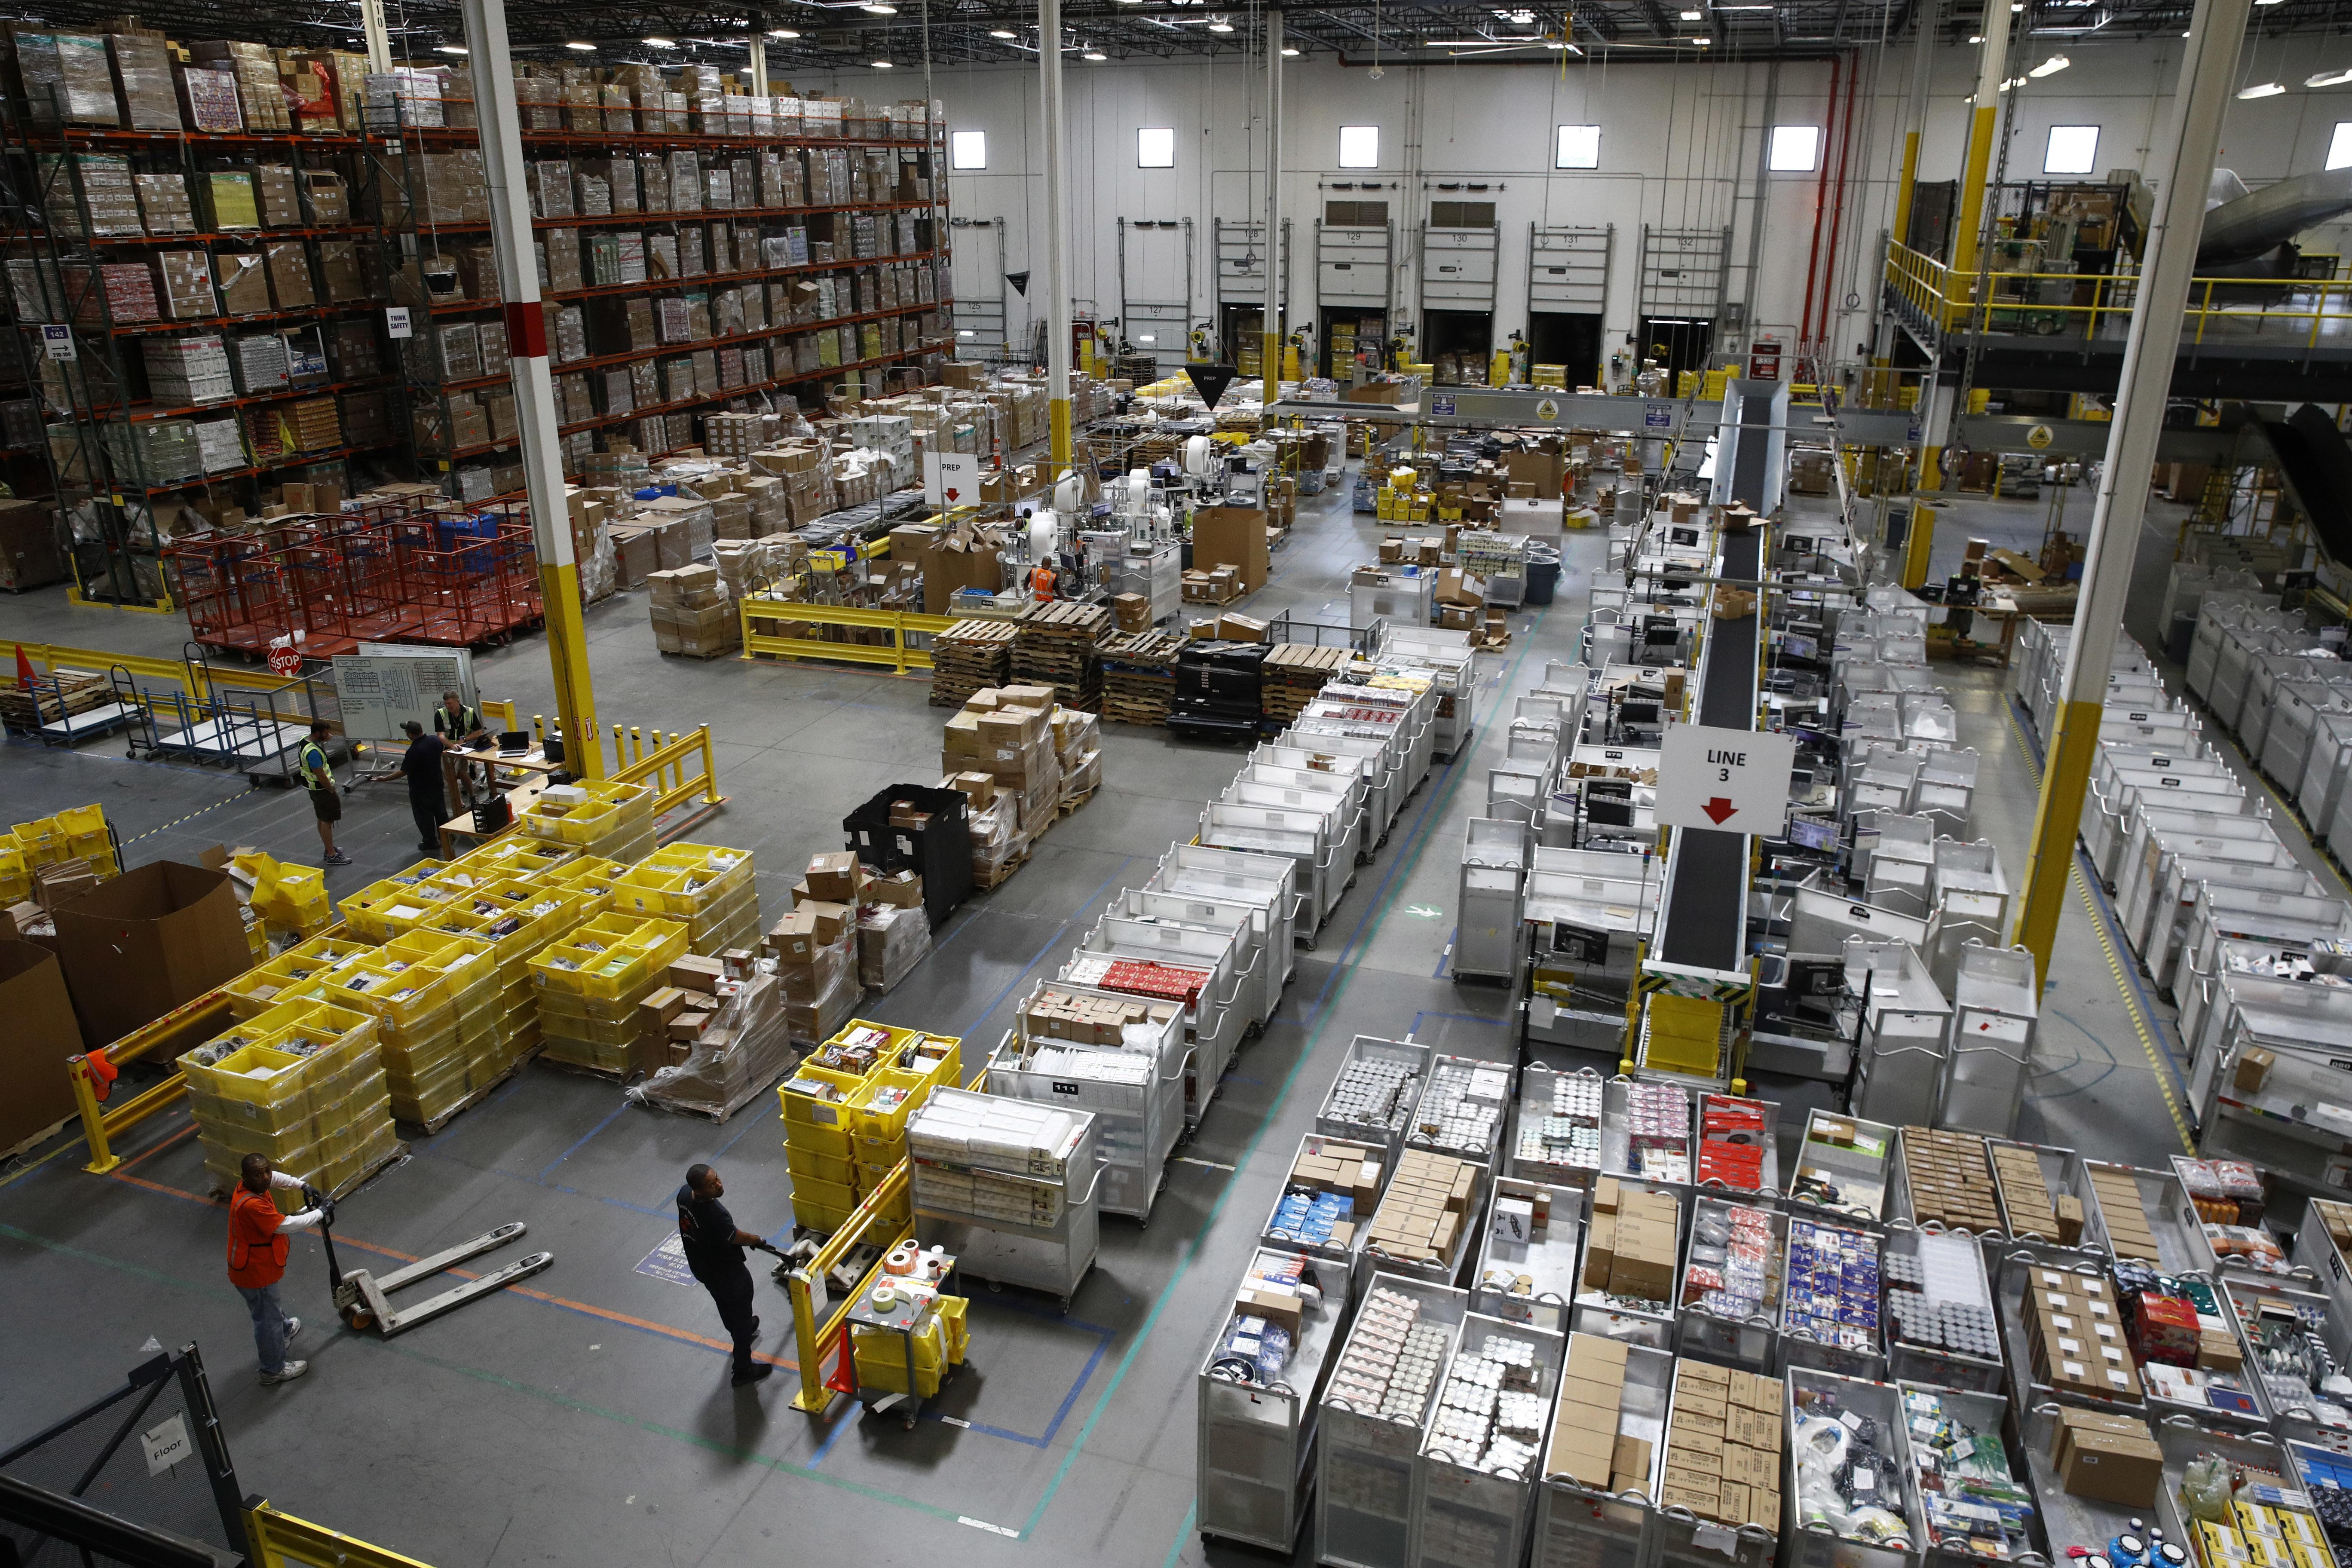 Amazon Warehouse Workers Say The Company Is Quietly Doling Out